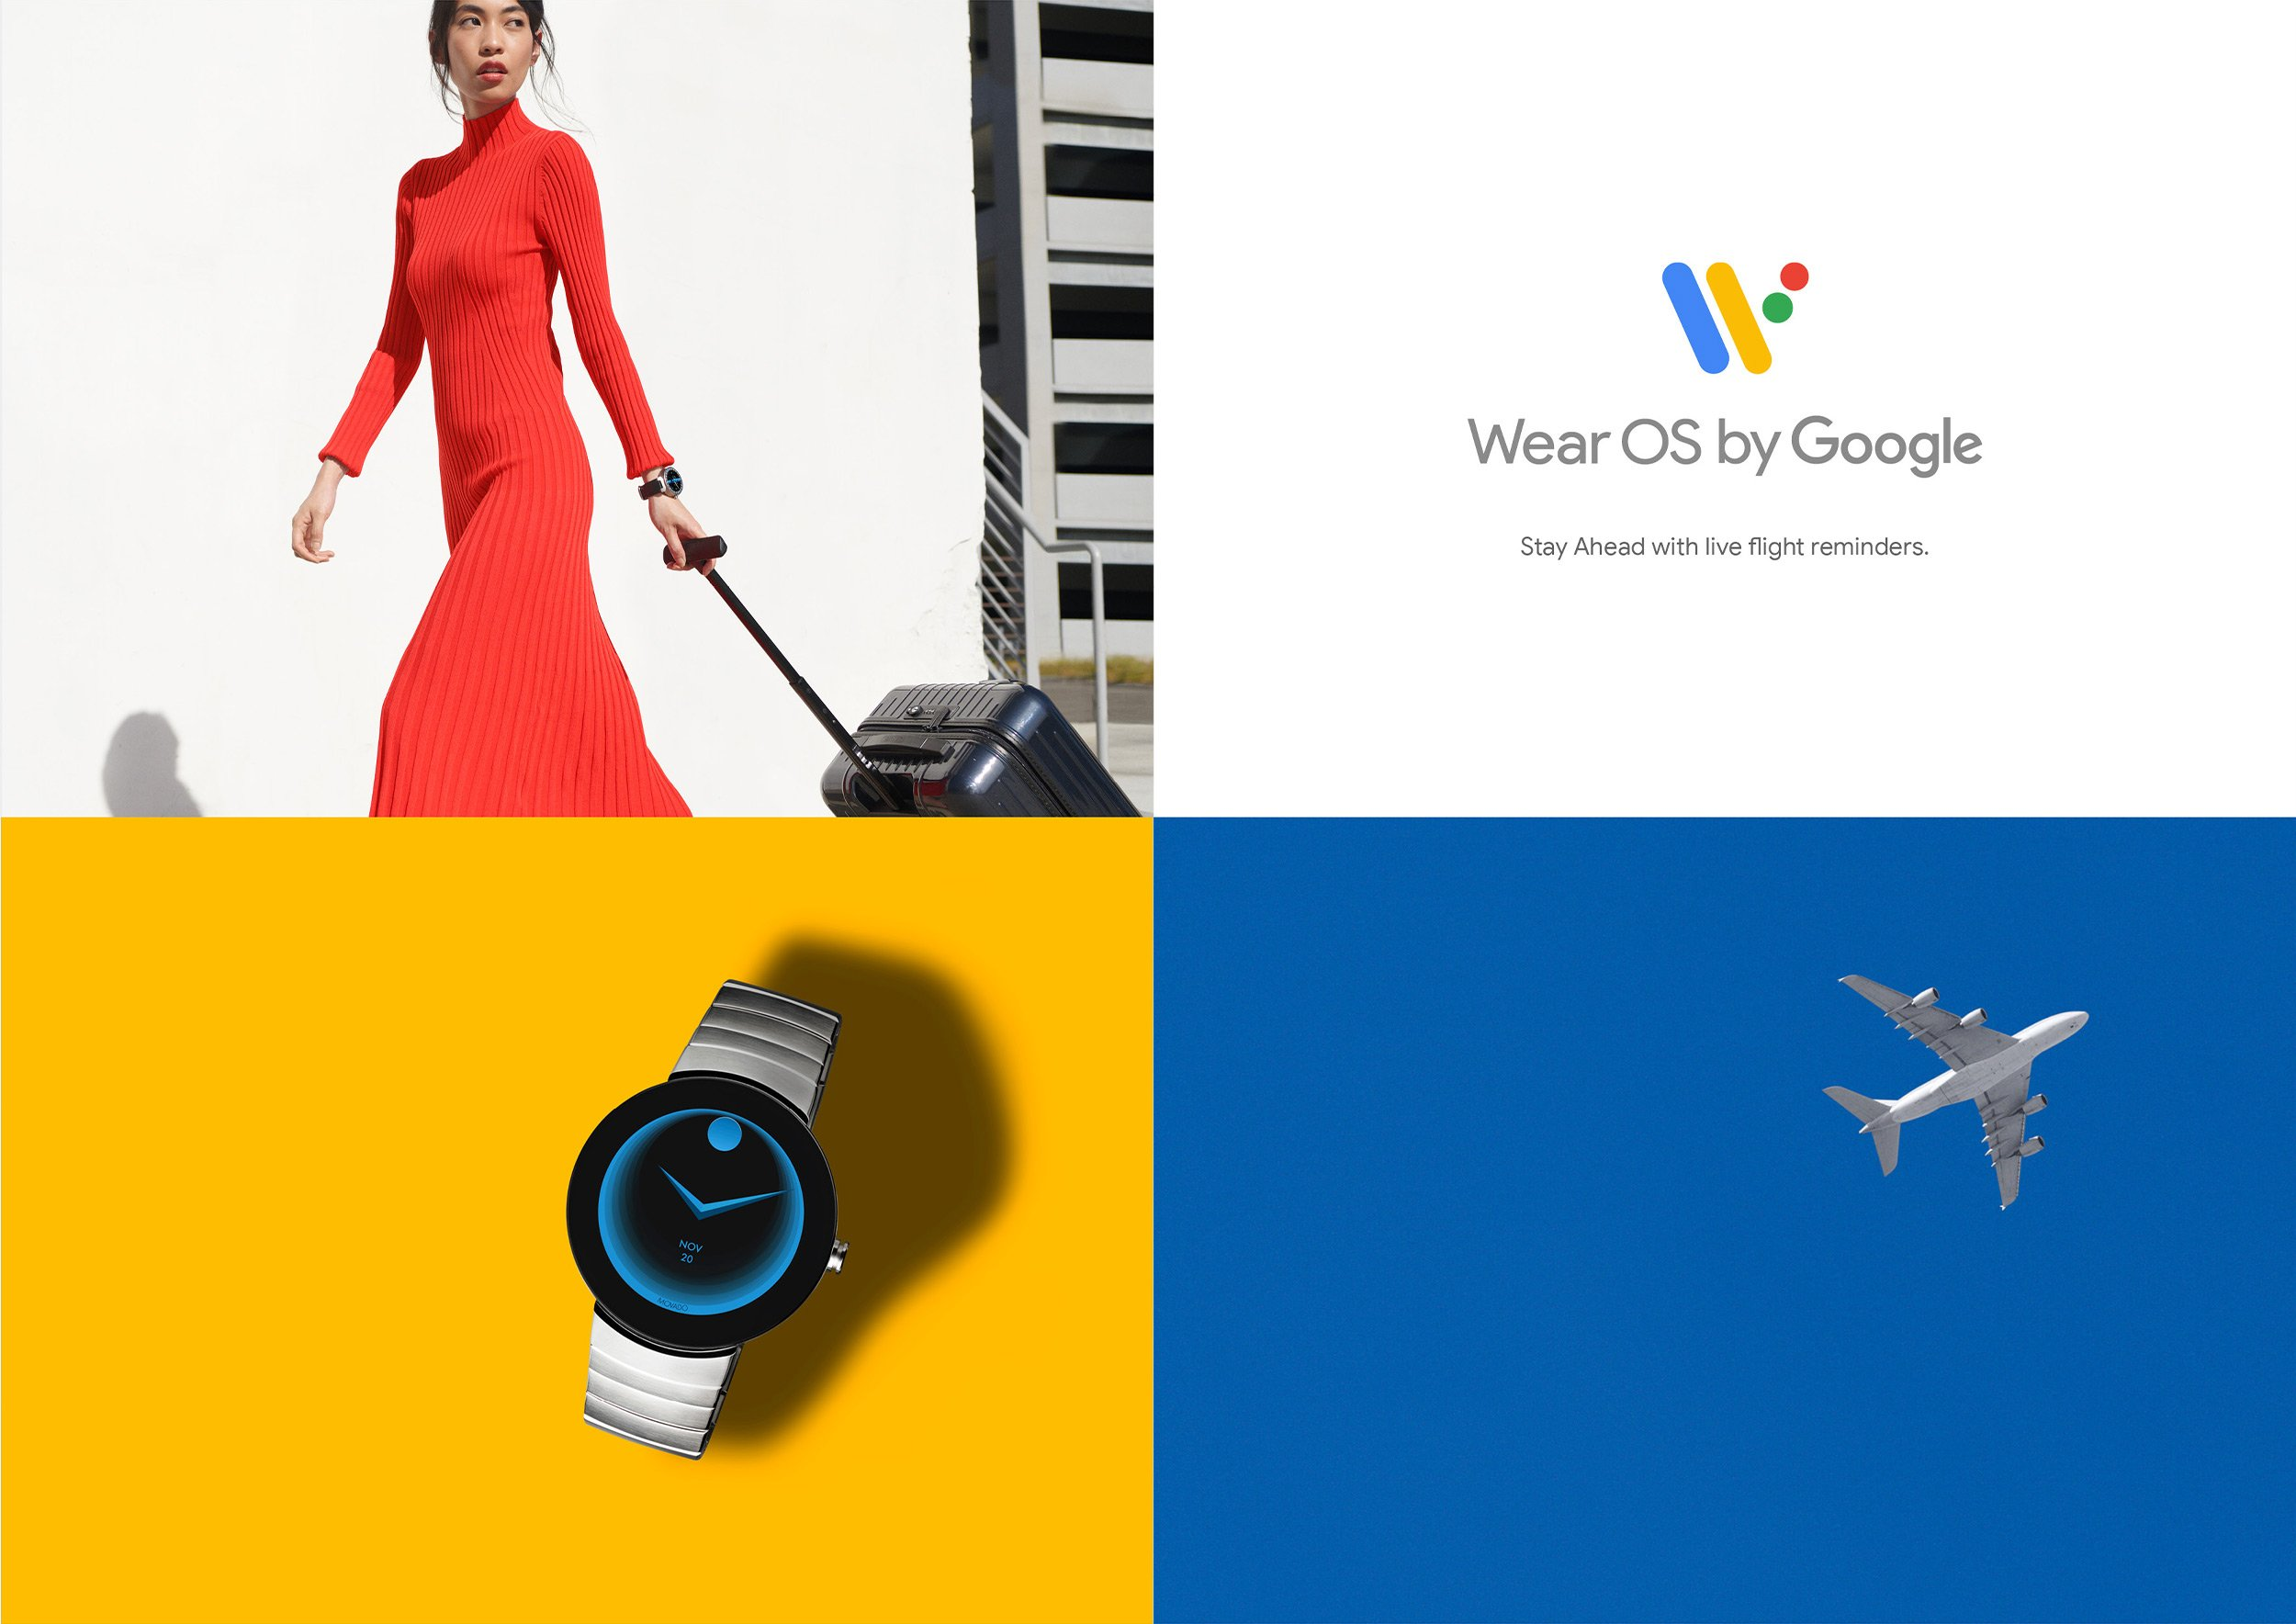 Google Wear OS Campaign ad, Stay ahead with live flight reminders. Art Direction and Campaign by RoAndCo